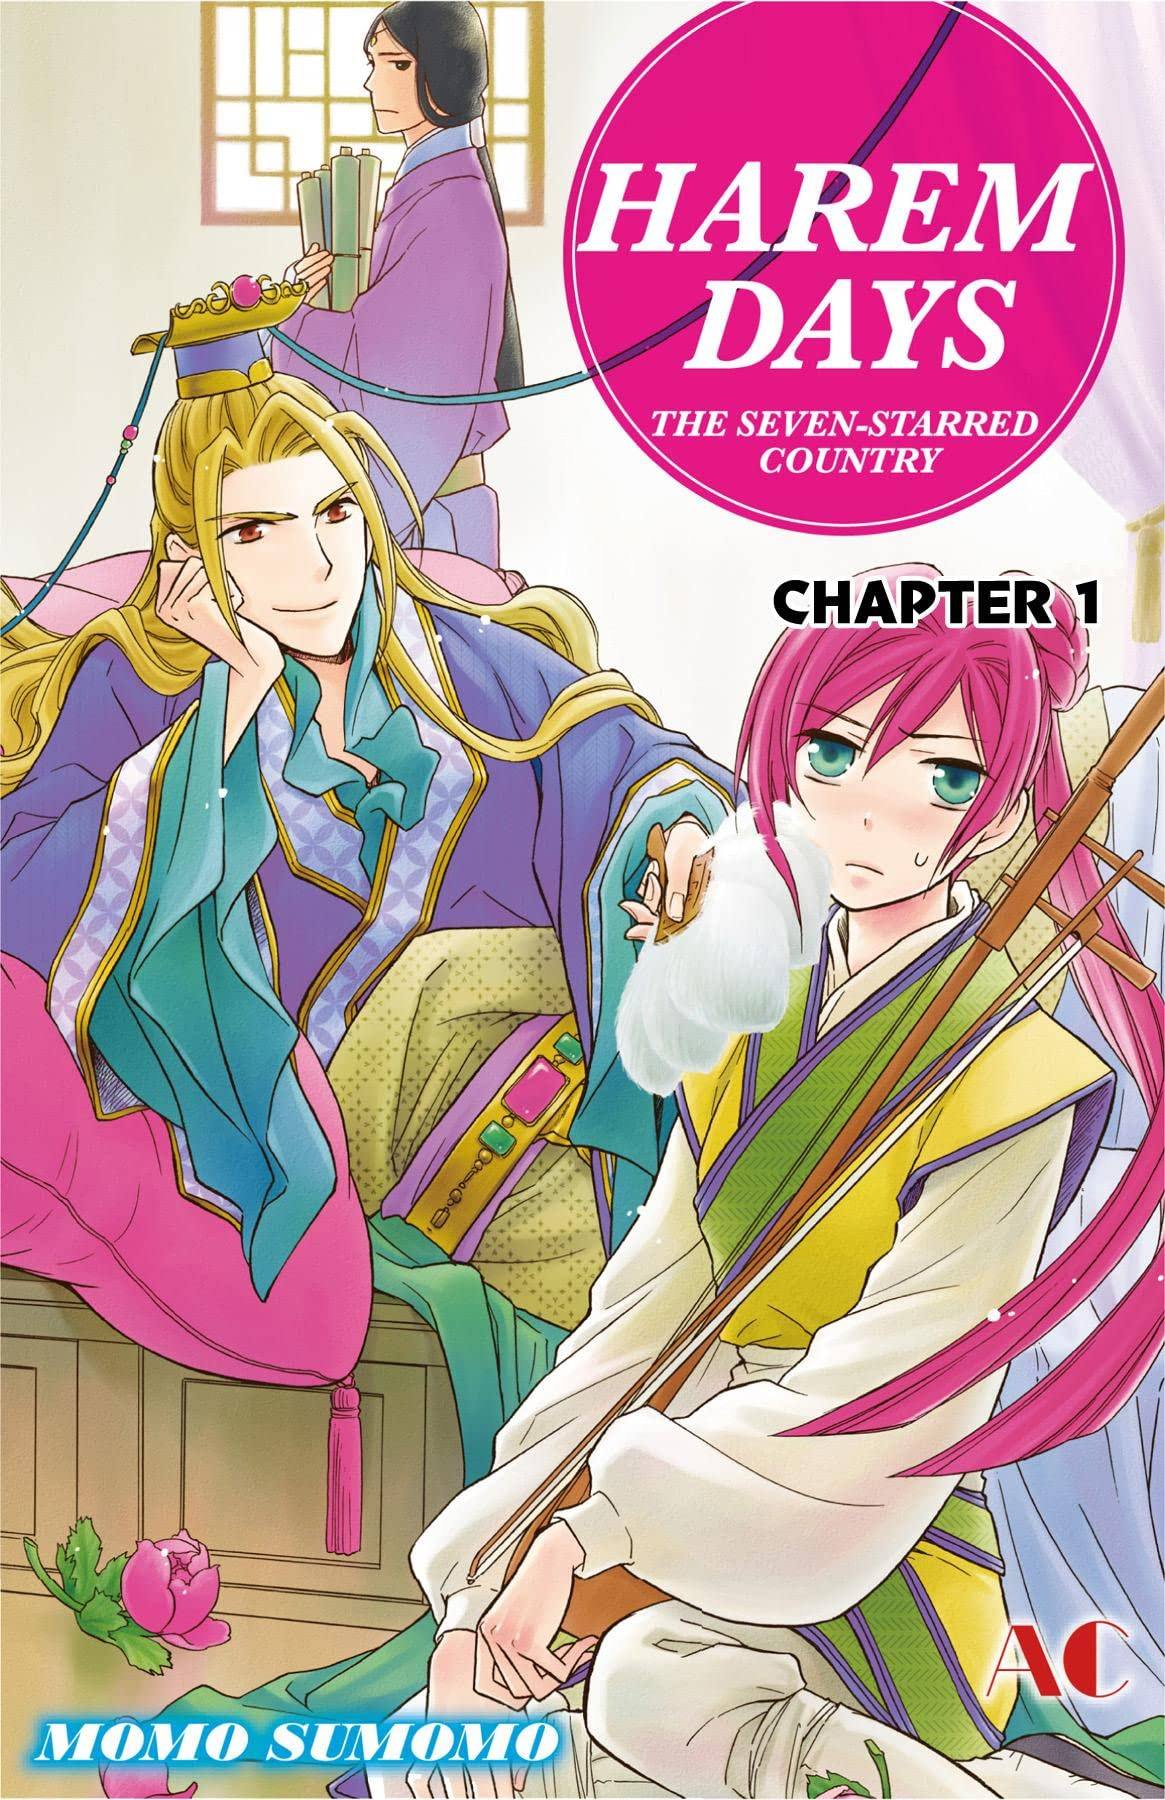 HAREM DAYS THE SEVEN-STARRED COUNTRY #1